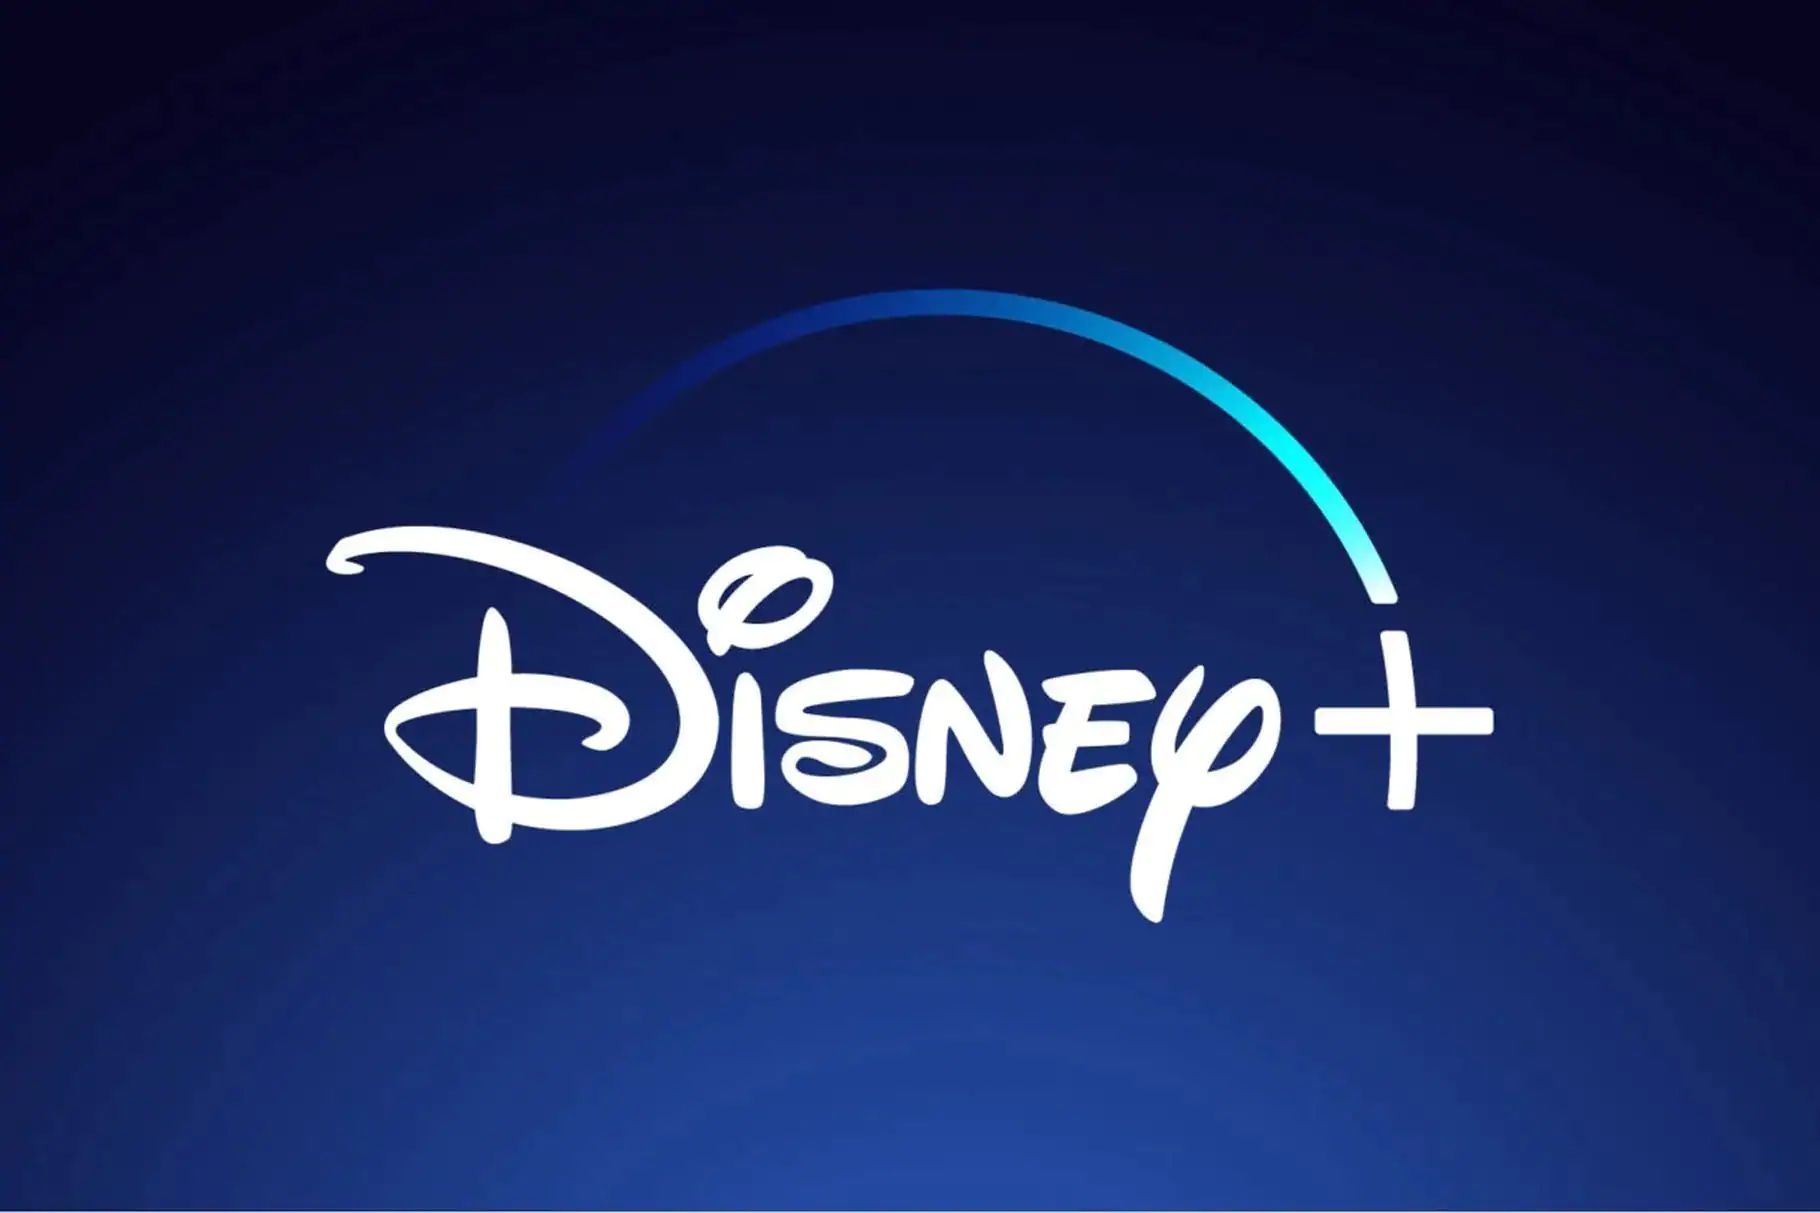 Disney+ Hotstar Is Getting Its First Price Hike